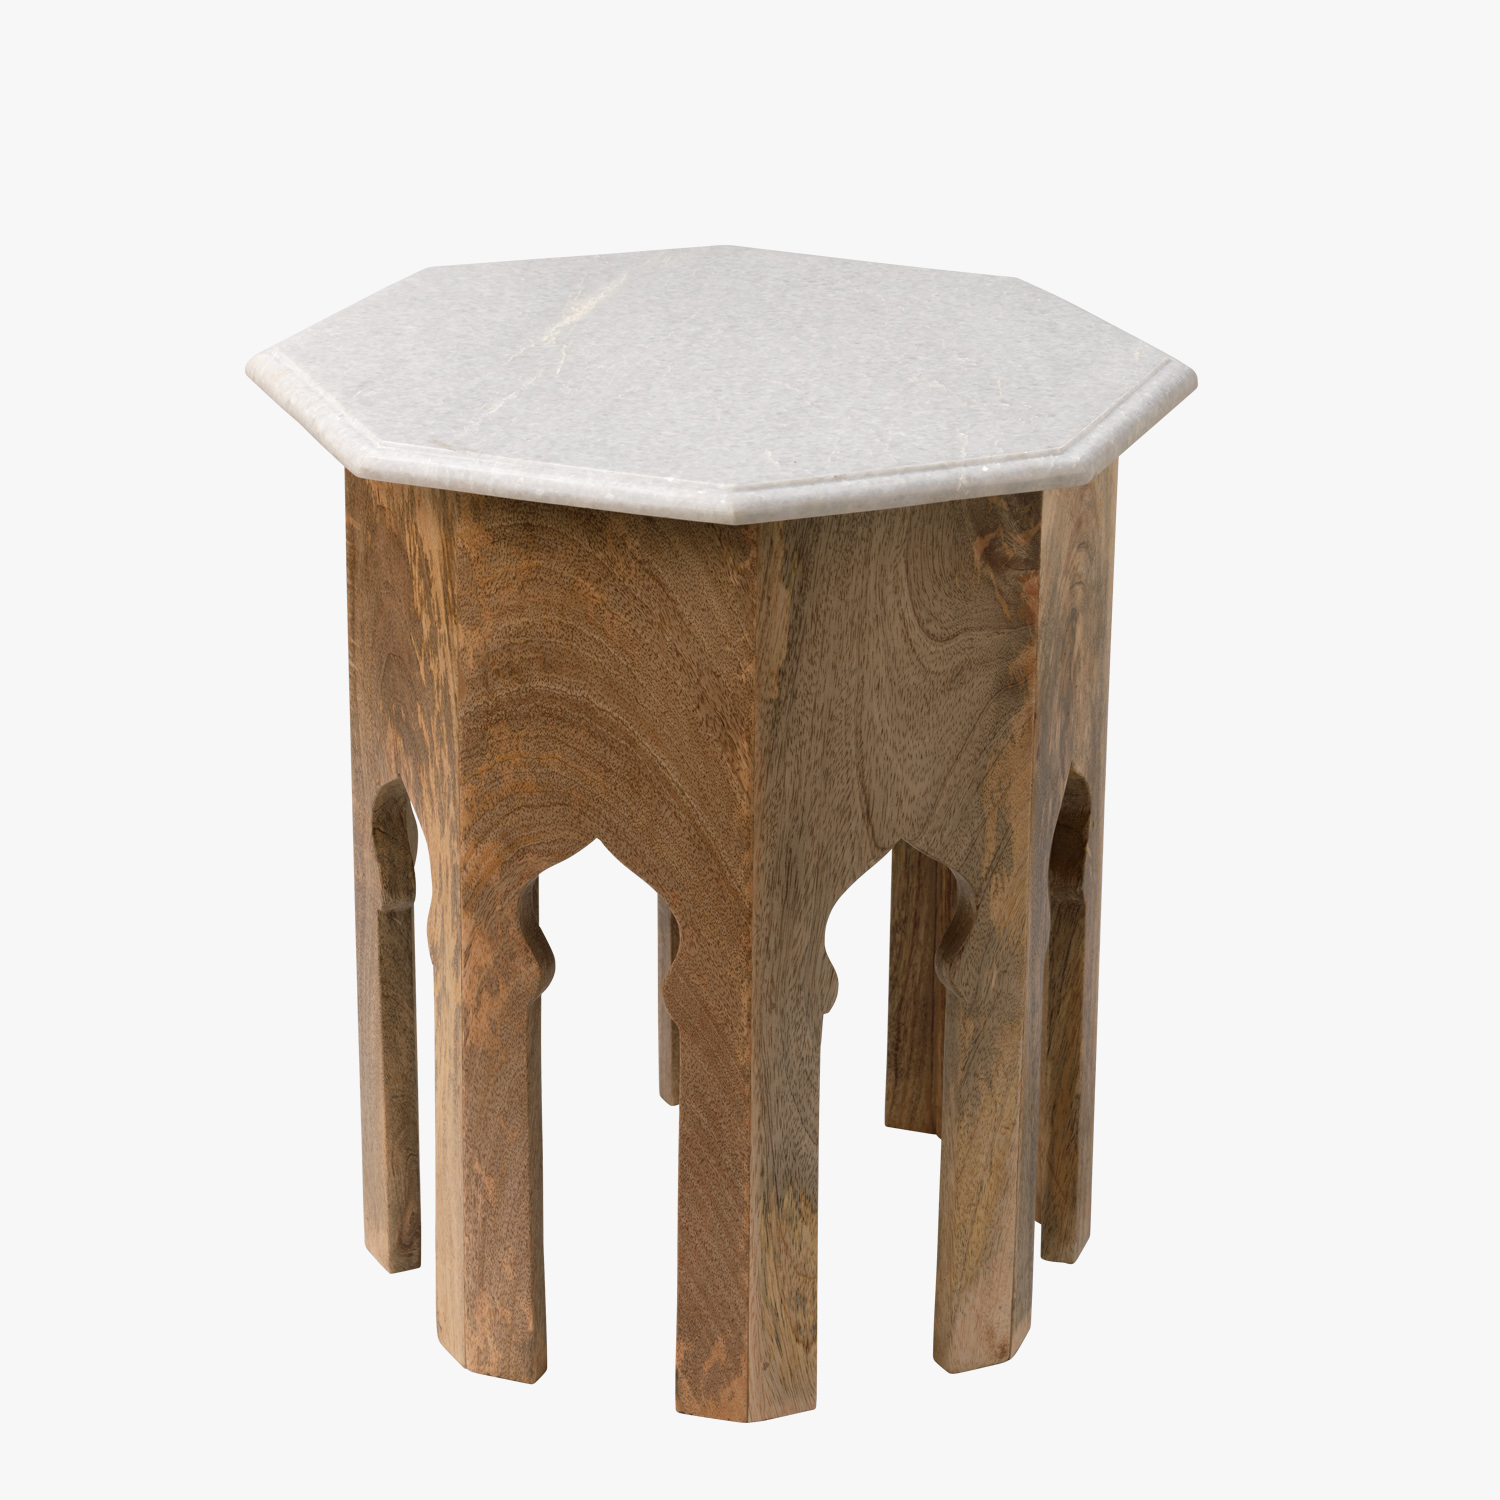 salma marble top table accent tables dear keaton wood ethan allen leather furniture covers for outdoor counter height dining set with bench antique oak small peva tablecloth pine